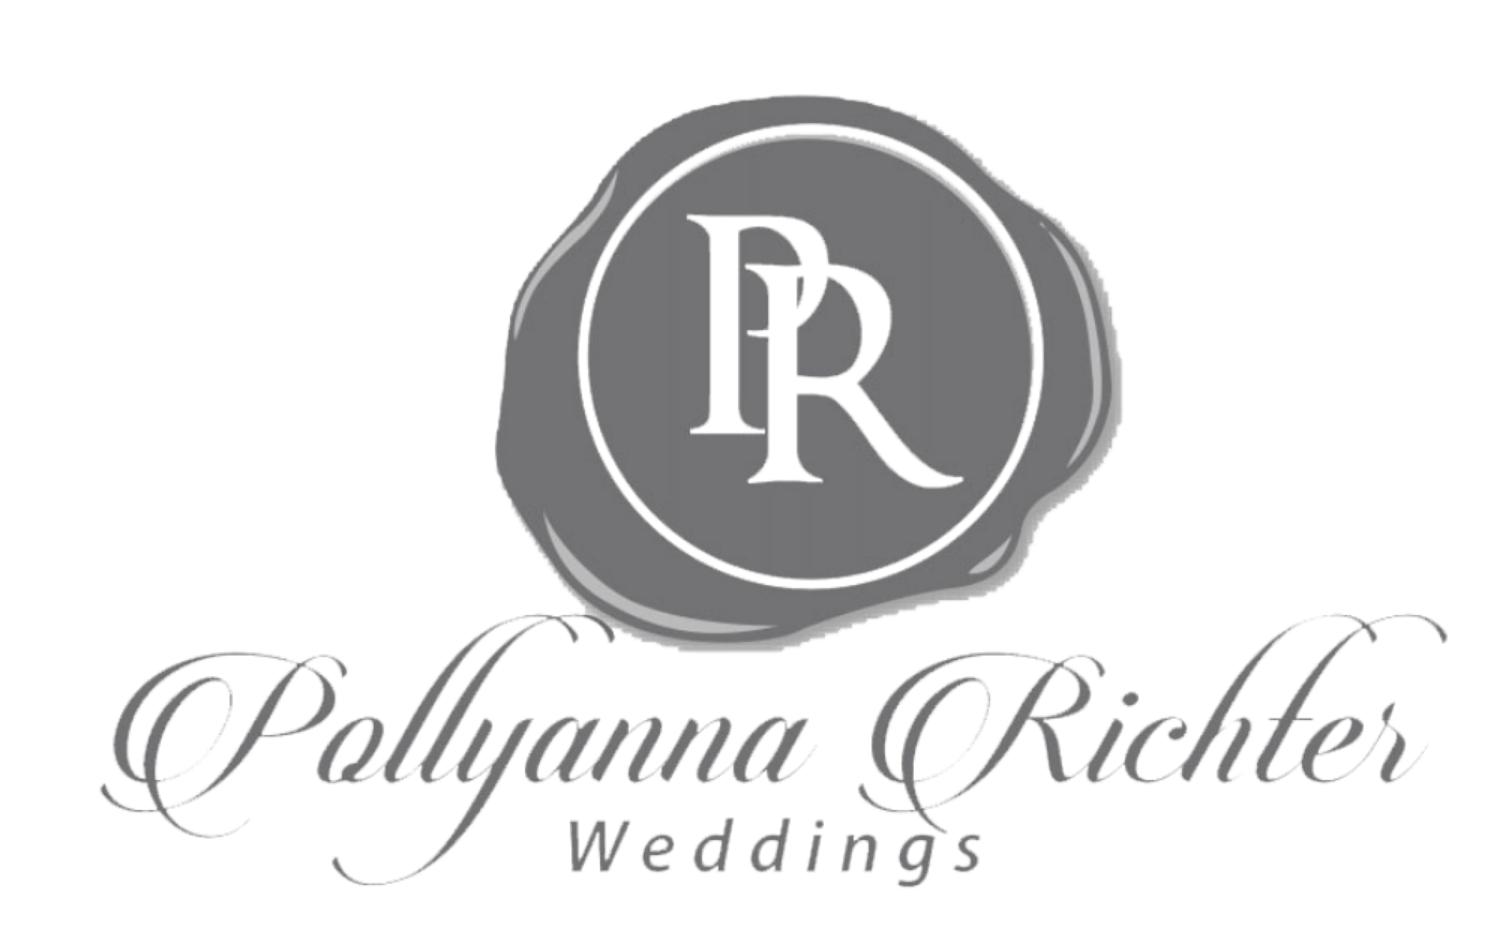 Pollyanna Richter Weddings | Atlanta Certified Wedding Planner - Exceptional and Timeless Weddings are our Fingerprint.